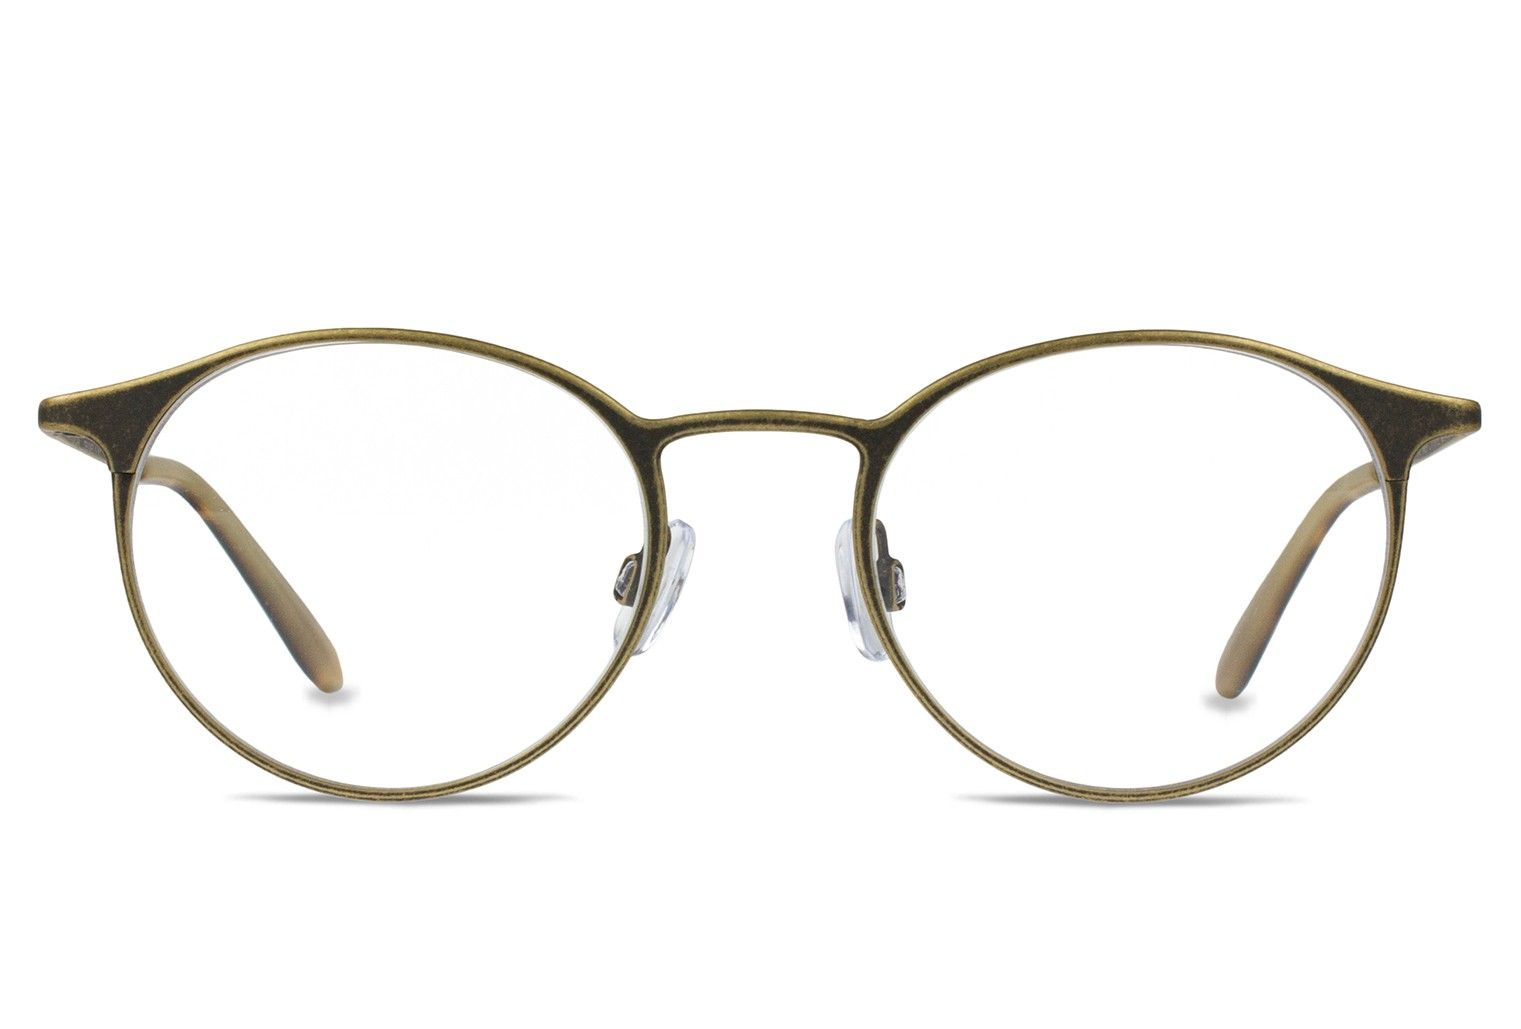 ff71d0fecef BIG TIMER Round Eyeglasses for Man - Vint   York